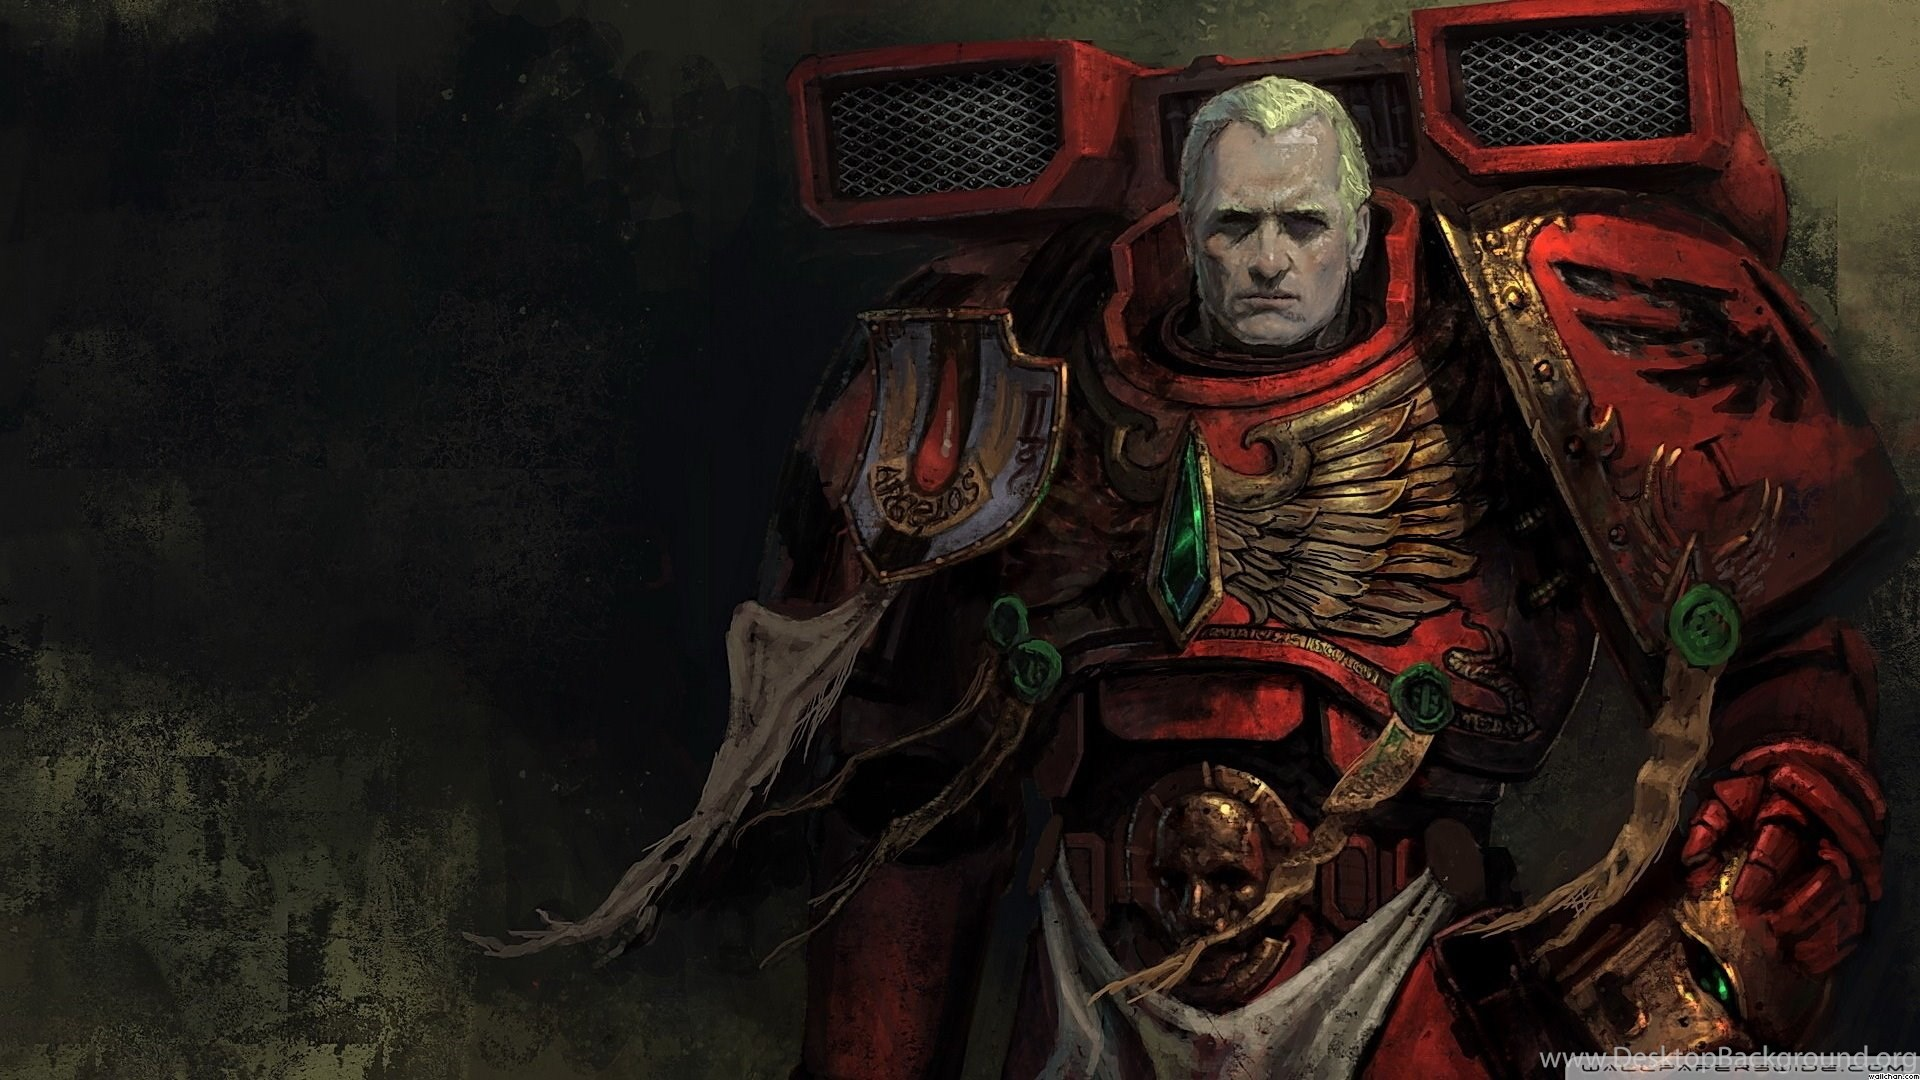 Wallpapers The Wheel Of Time Warhammer K Space Marines Wallchan